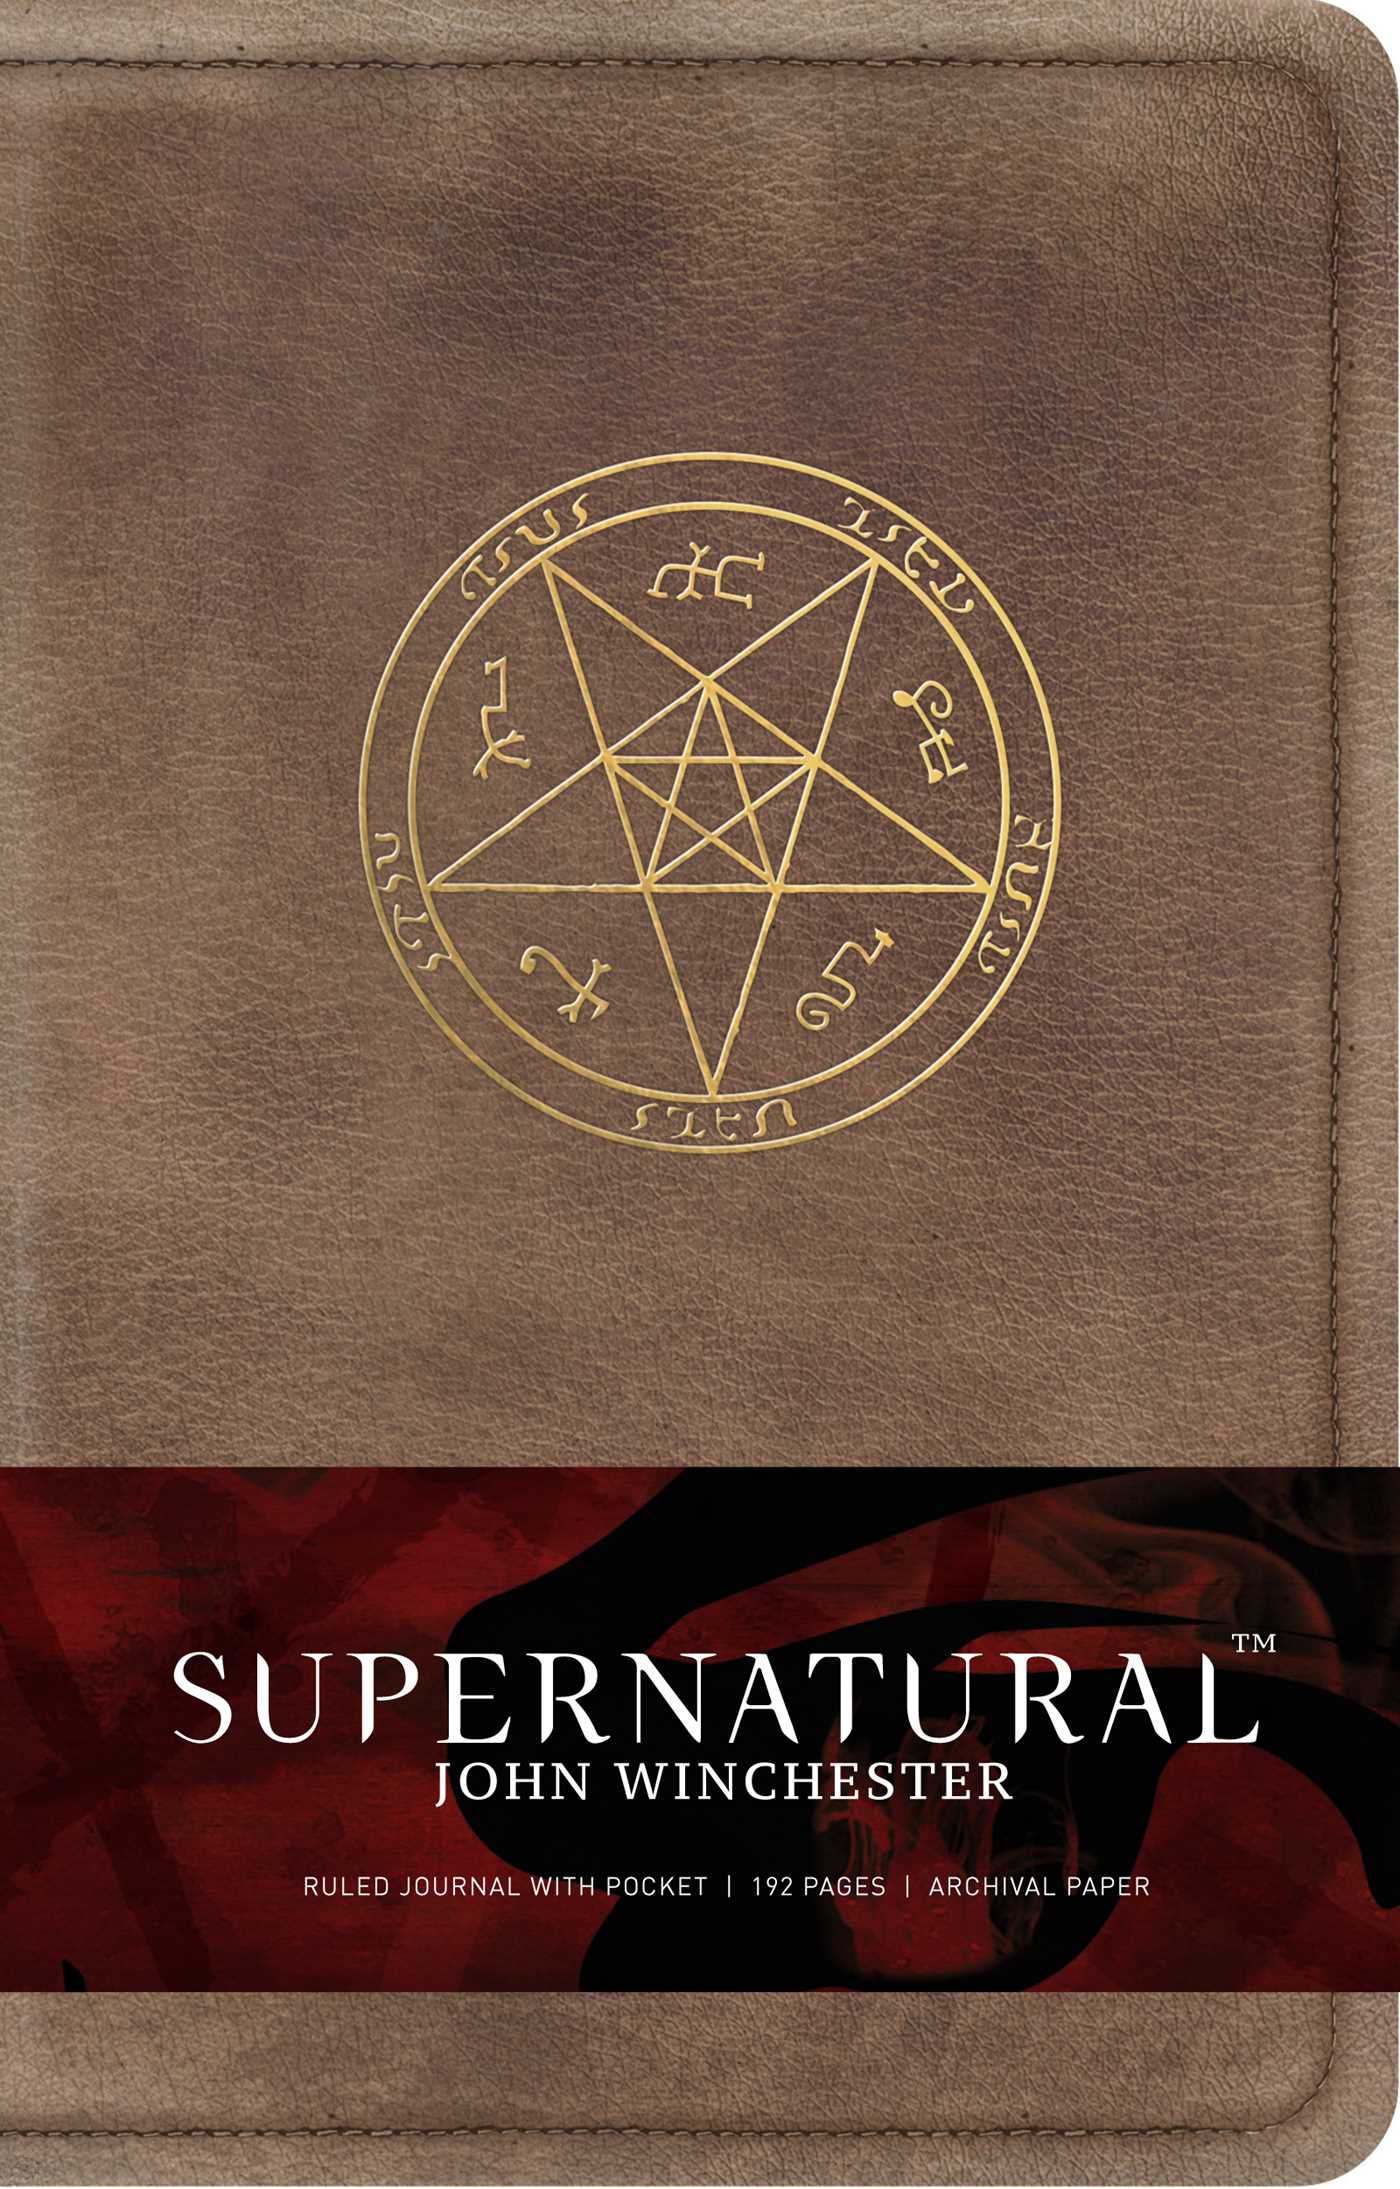 Supernatural john winchester hardcover ruled journal 9781683830740 hr